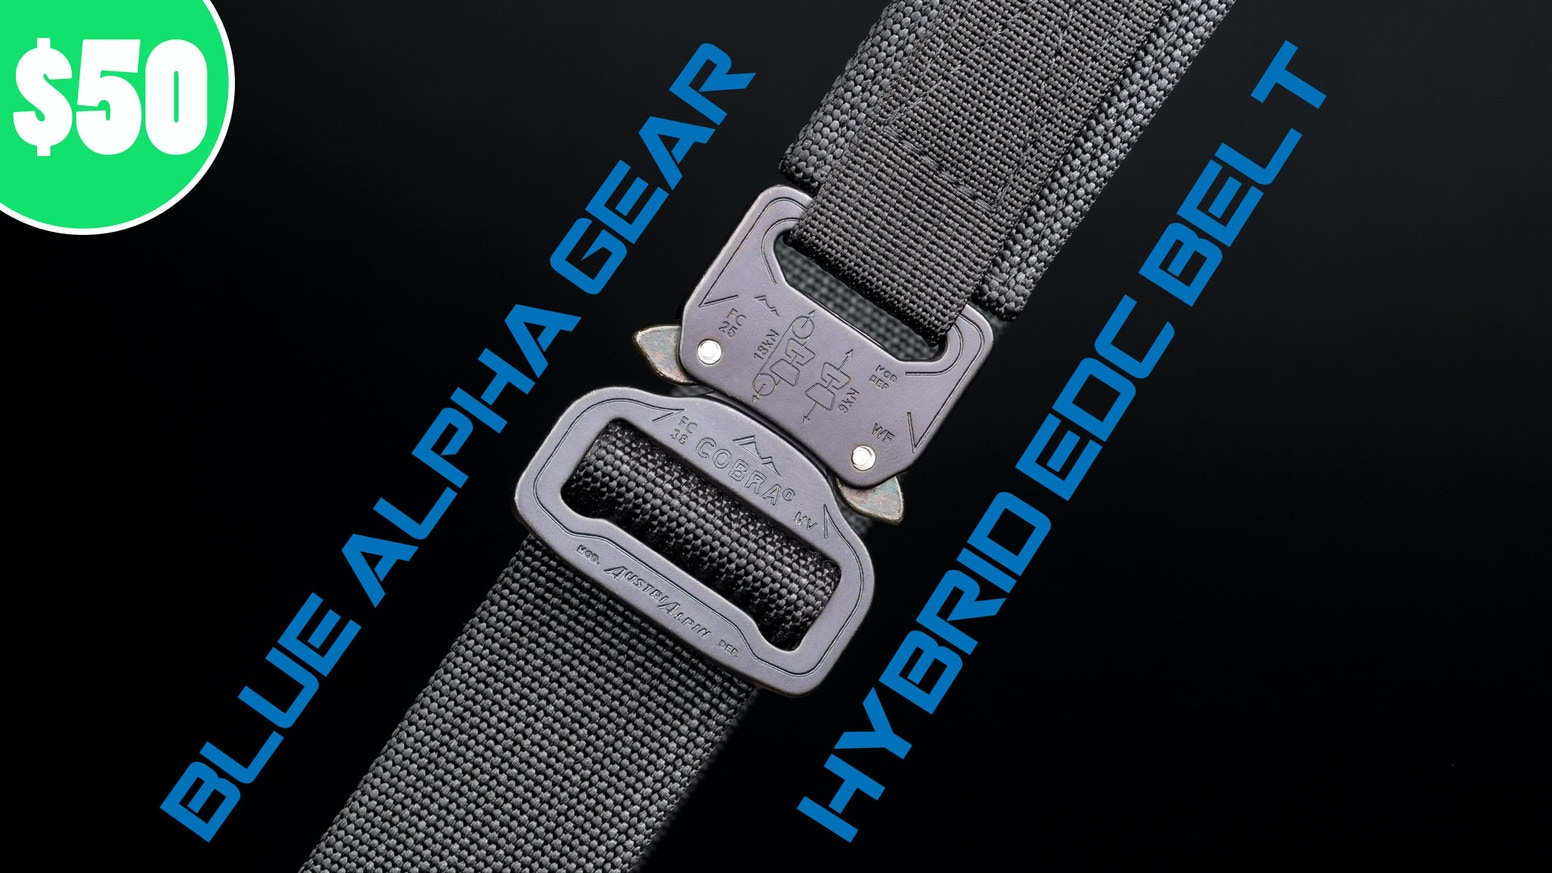 6d80240d5 Blue Alpha Gear Hybrid EDC Belt. The Hybrid EDC is a tough yet comfortable  belt featuring a super strong buckle that fits